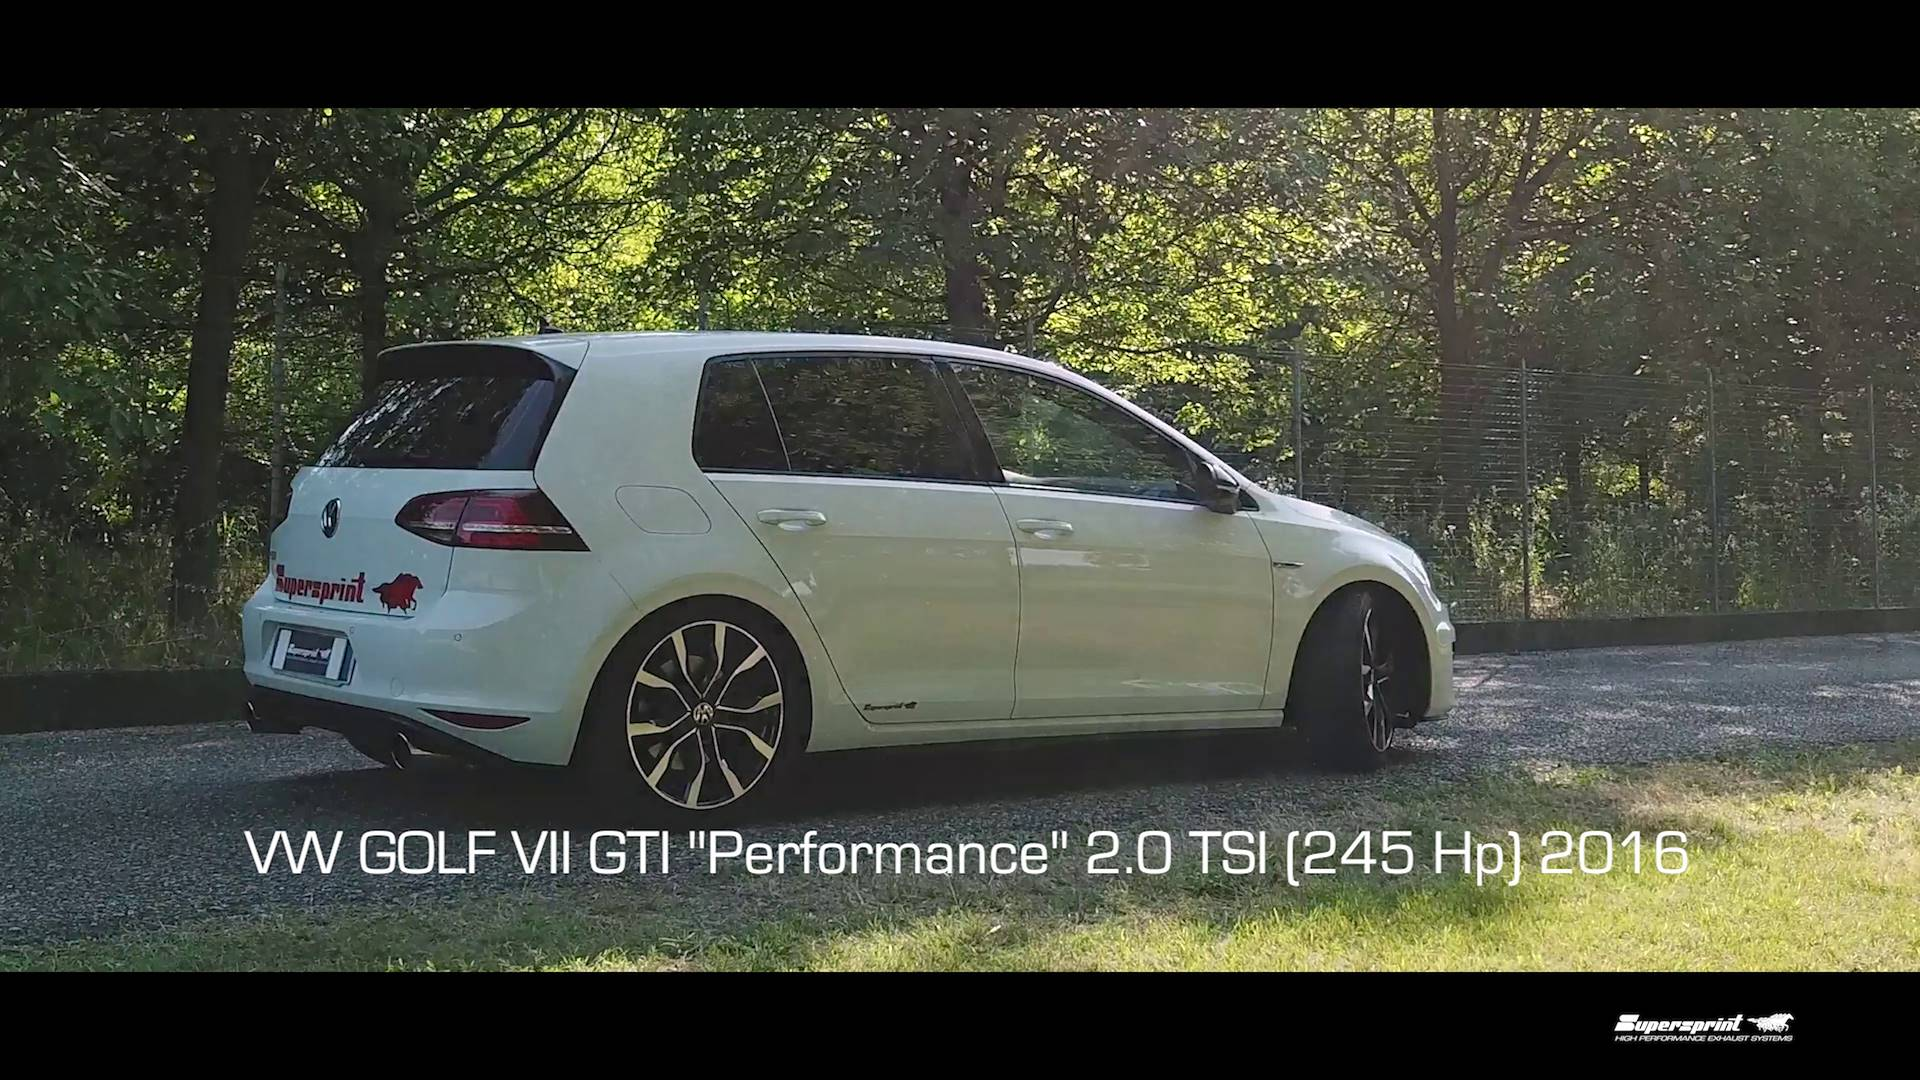 "Supersprint exhaust for VW GOLF VII GTI ""Performance"" 2.0 TSI (245 Hp) 2016"